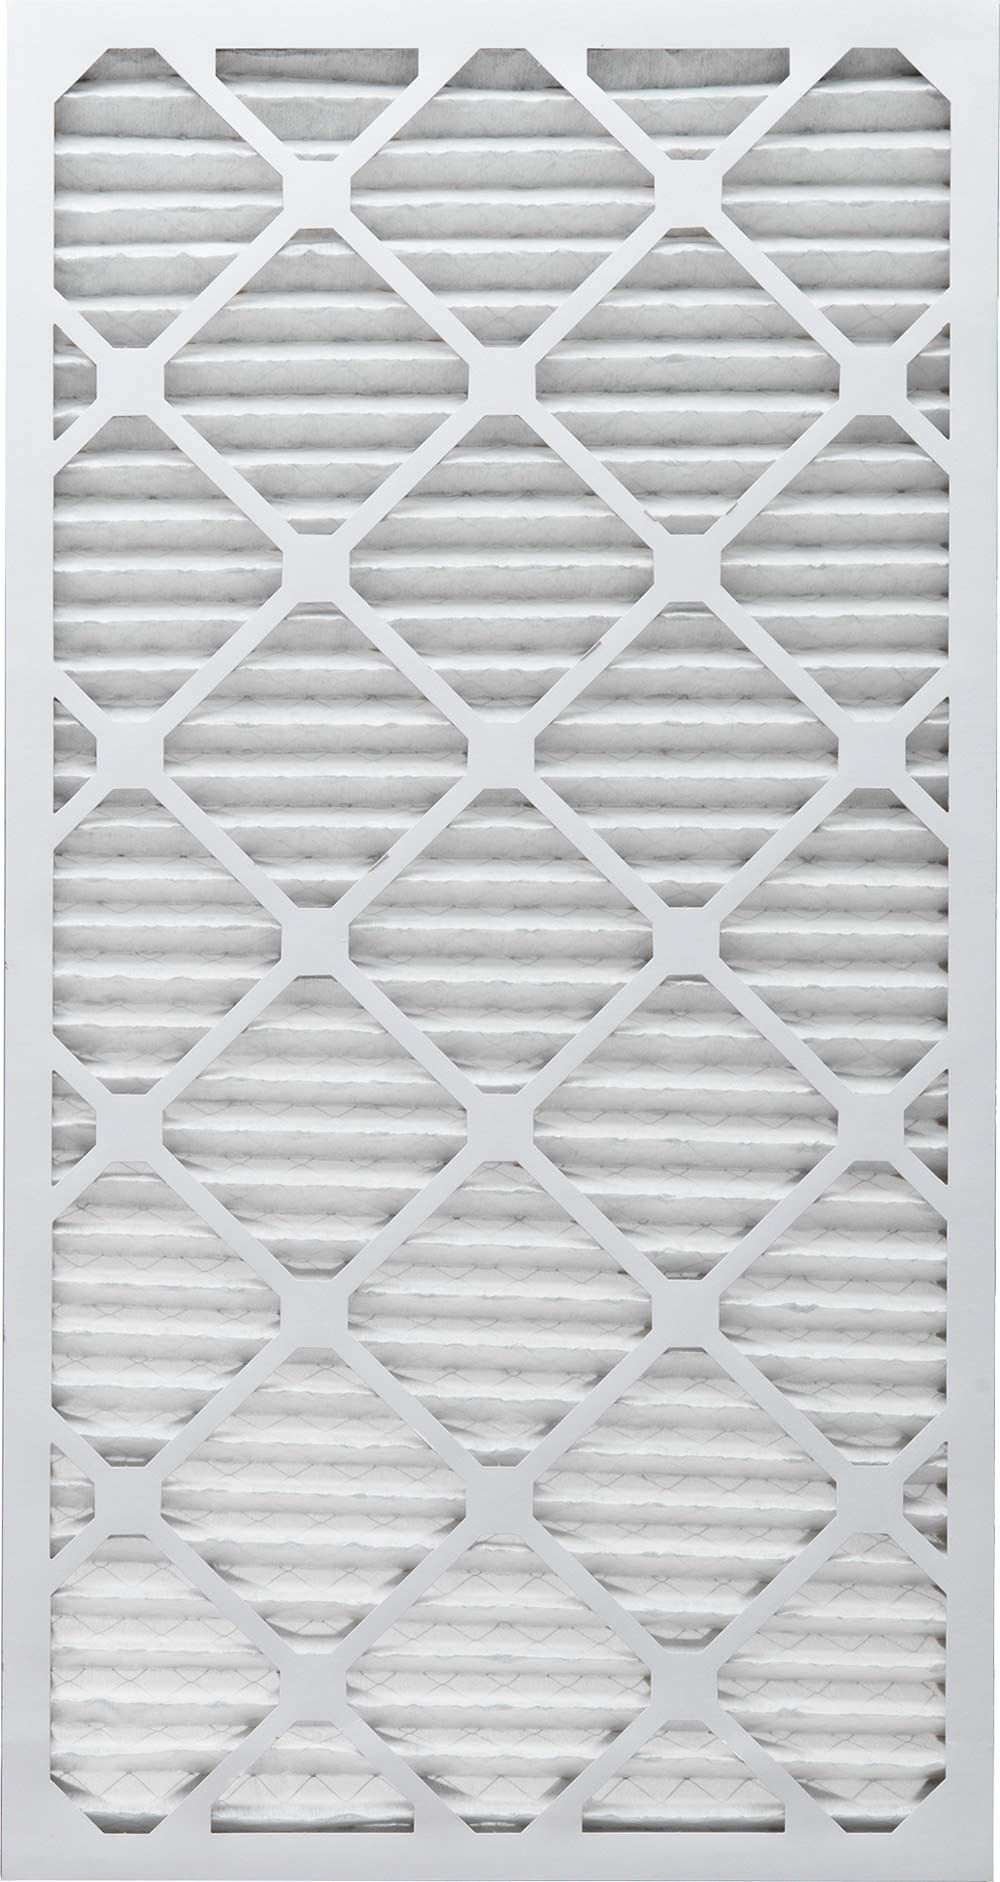 Nordic Pure 12x36x1 MERV 12 Pleated AC Furnace Air Filters